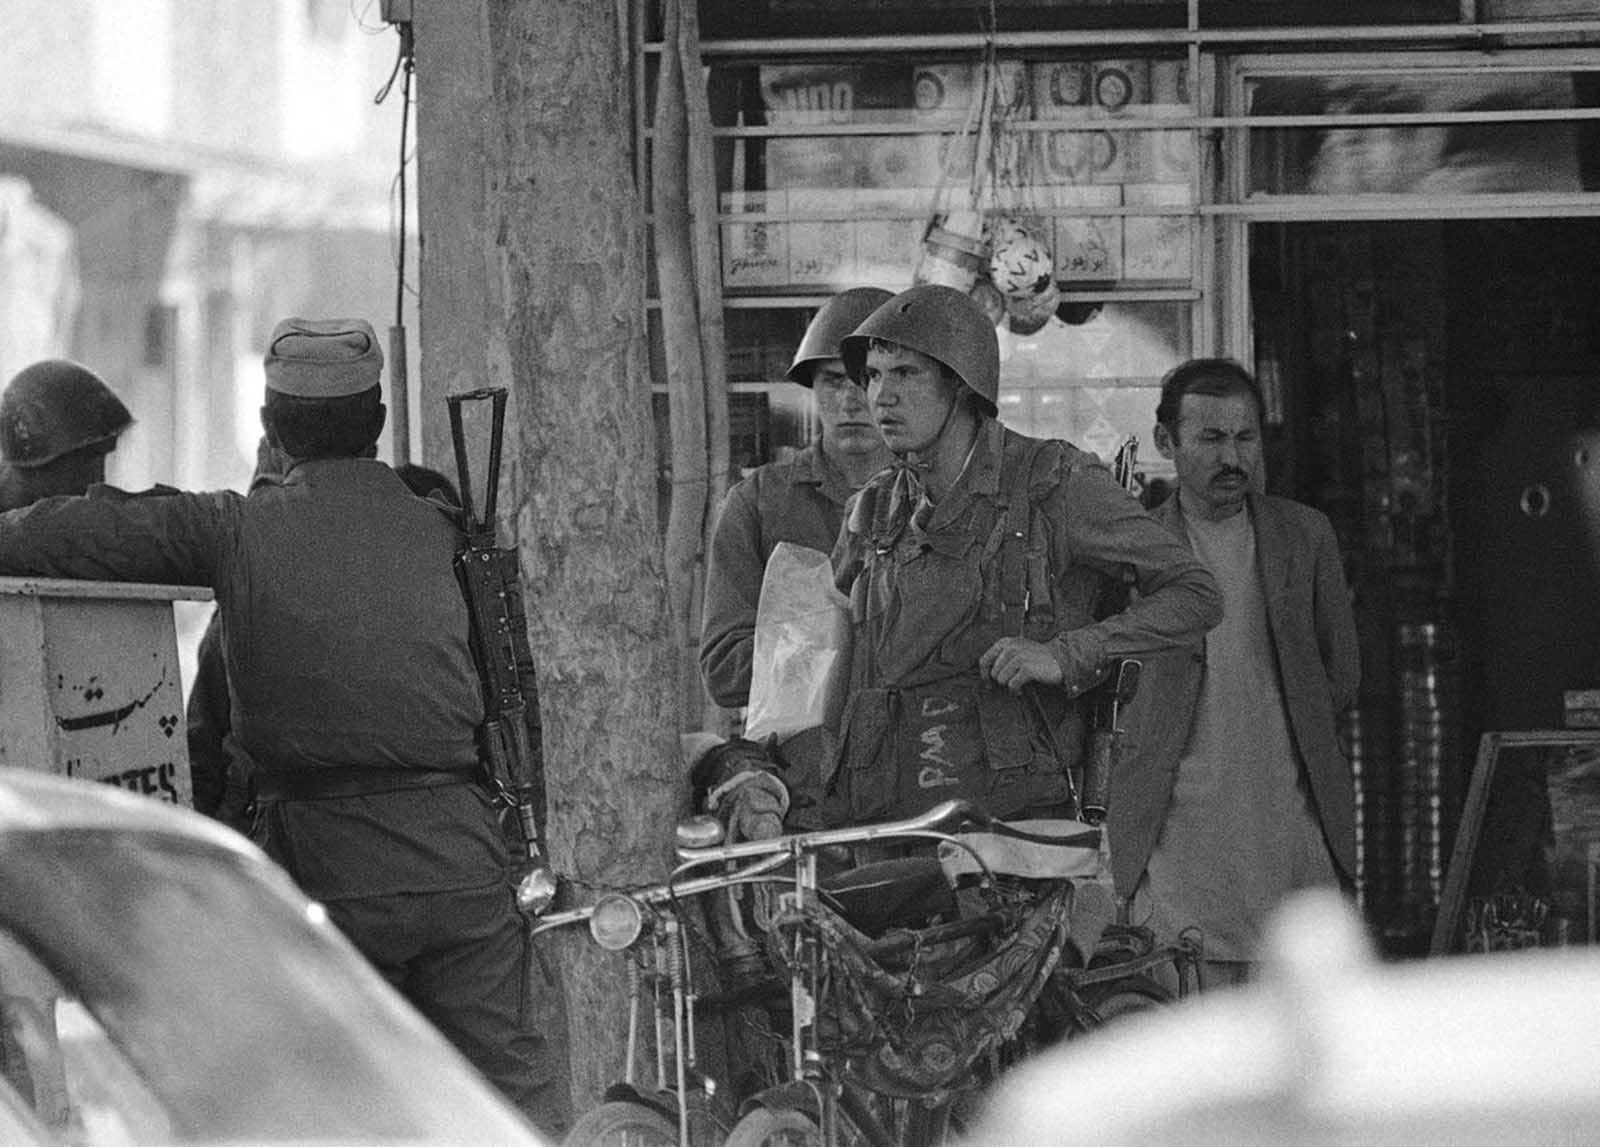 Two Soviet Army soldiers emerge from an Afghan shop in downtown Kabul on April 24, 1988.